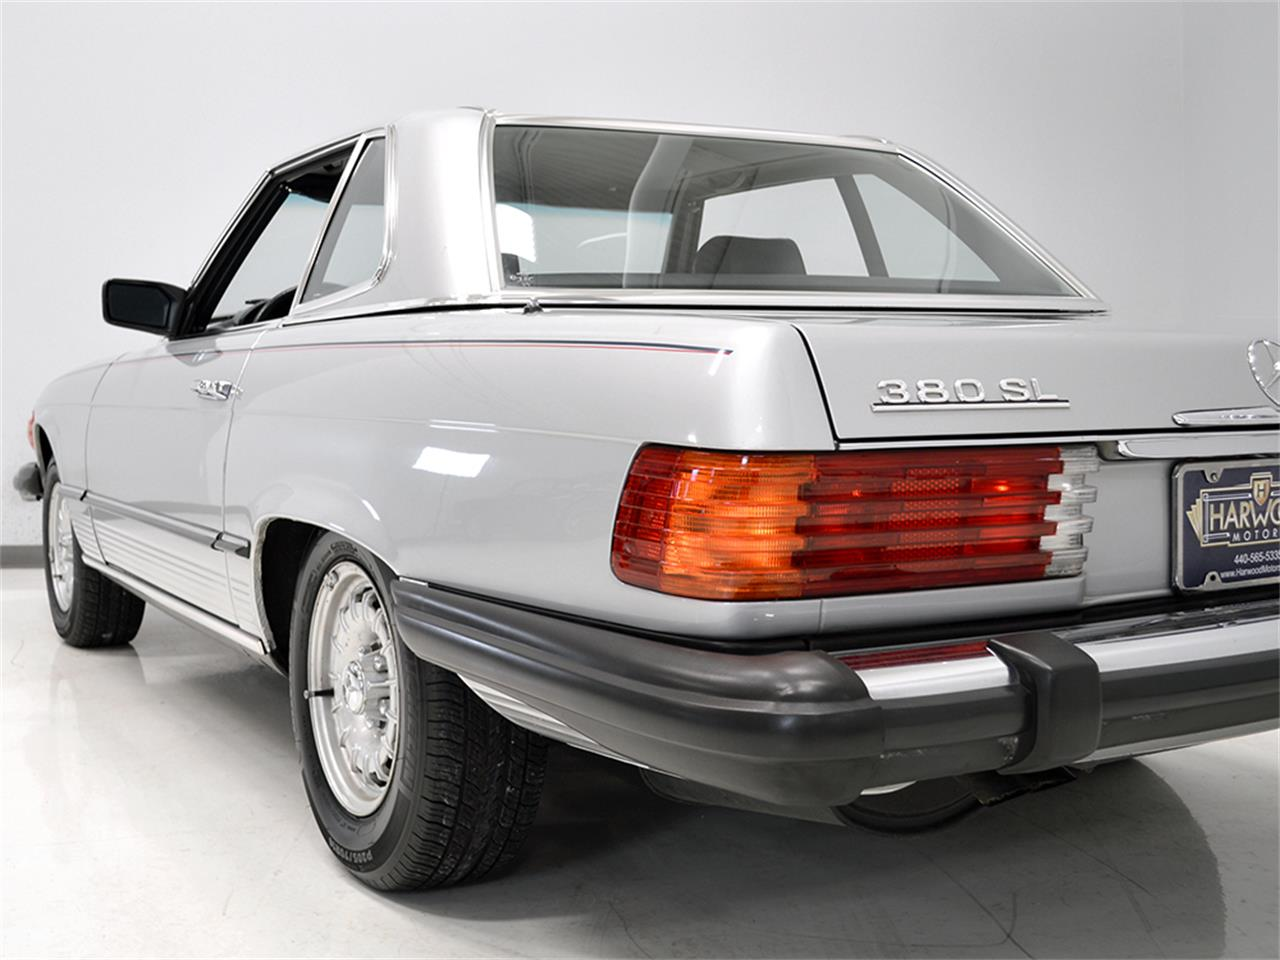 Large Picture of 1984 380SL located in Ohio - $17,900.00 Offered by Harwood Motors, LTD. - KA2F